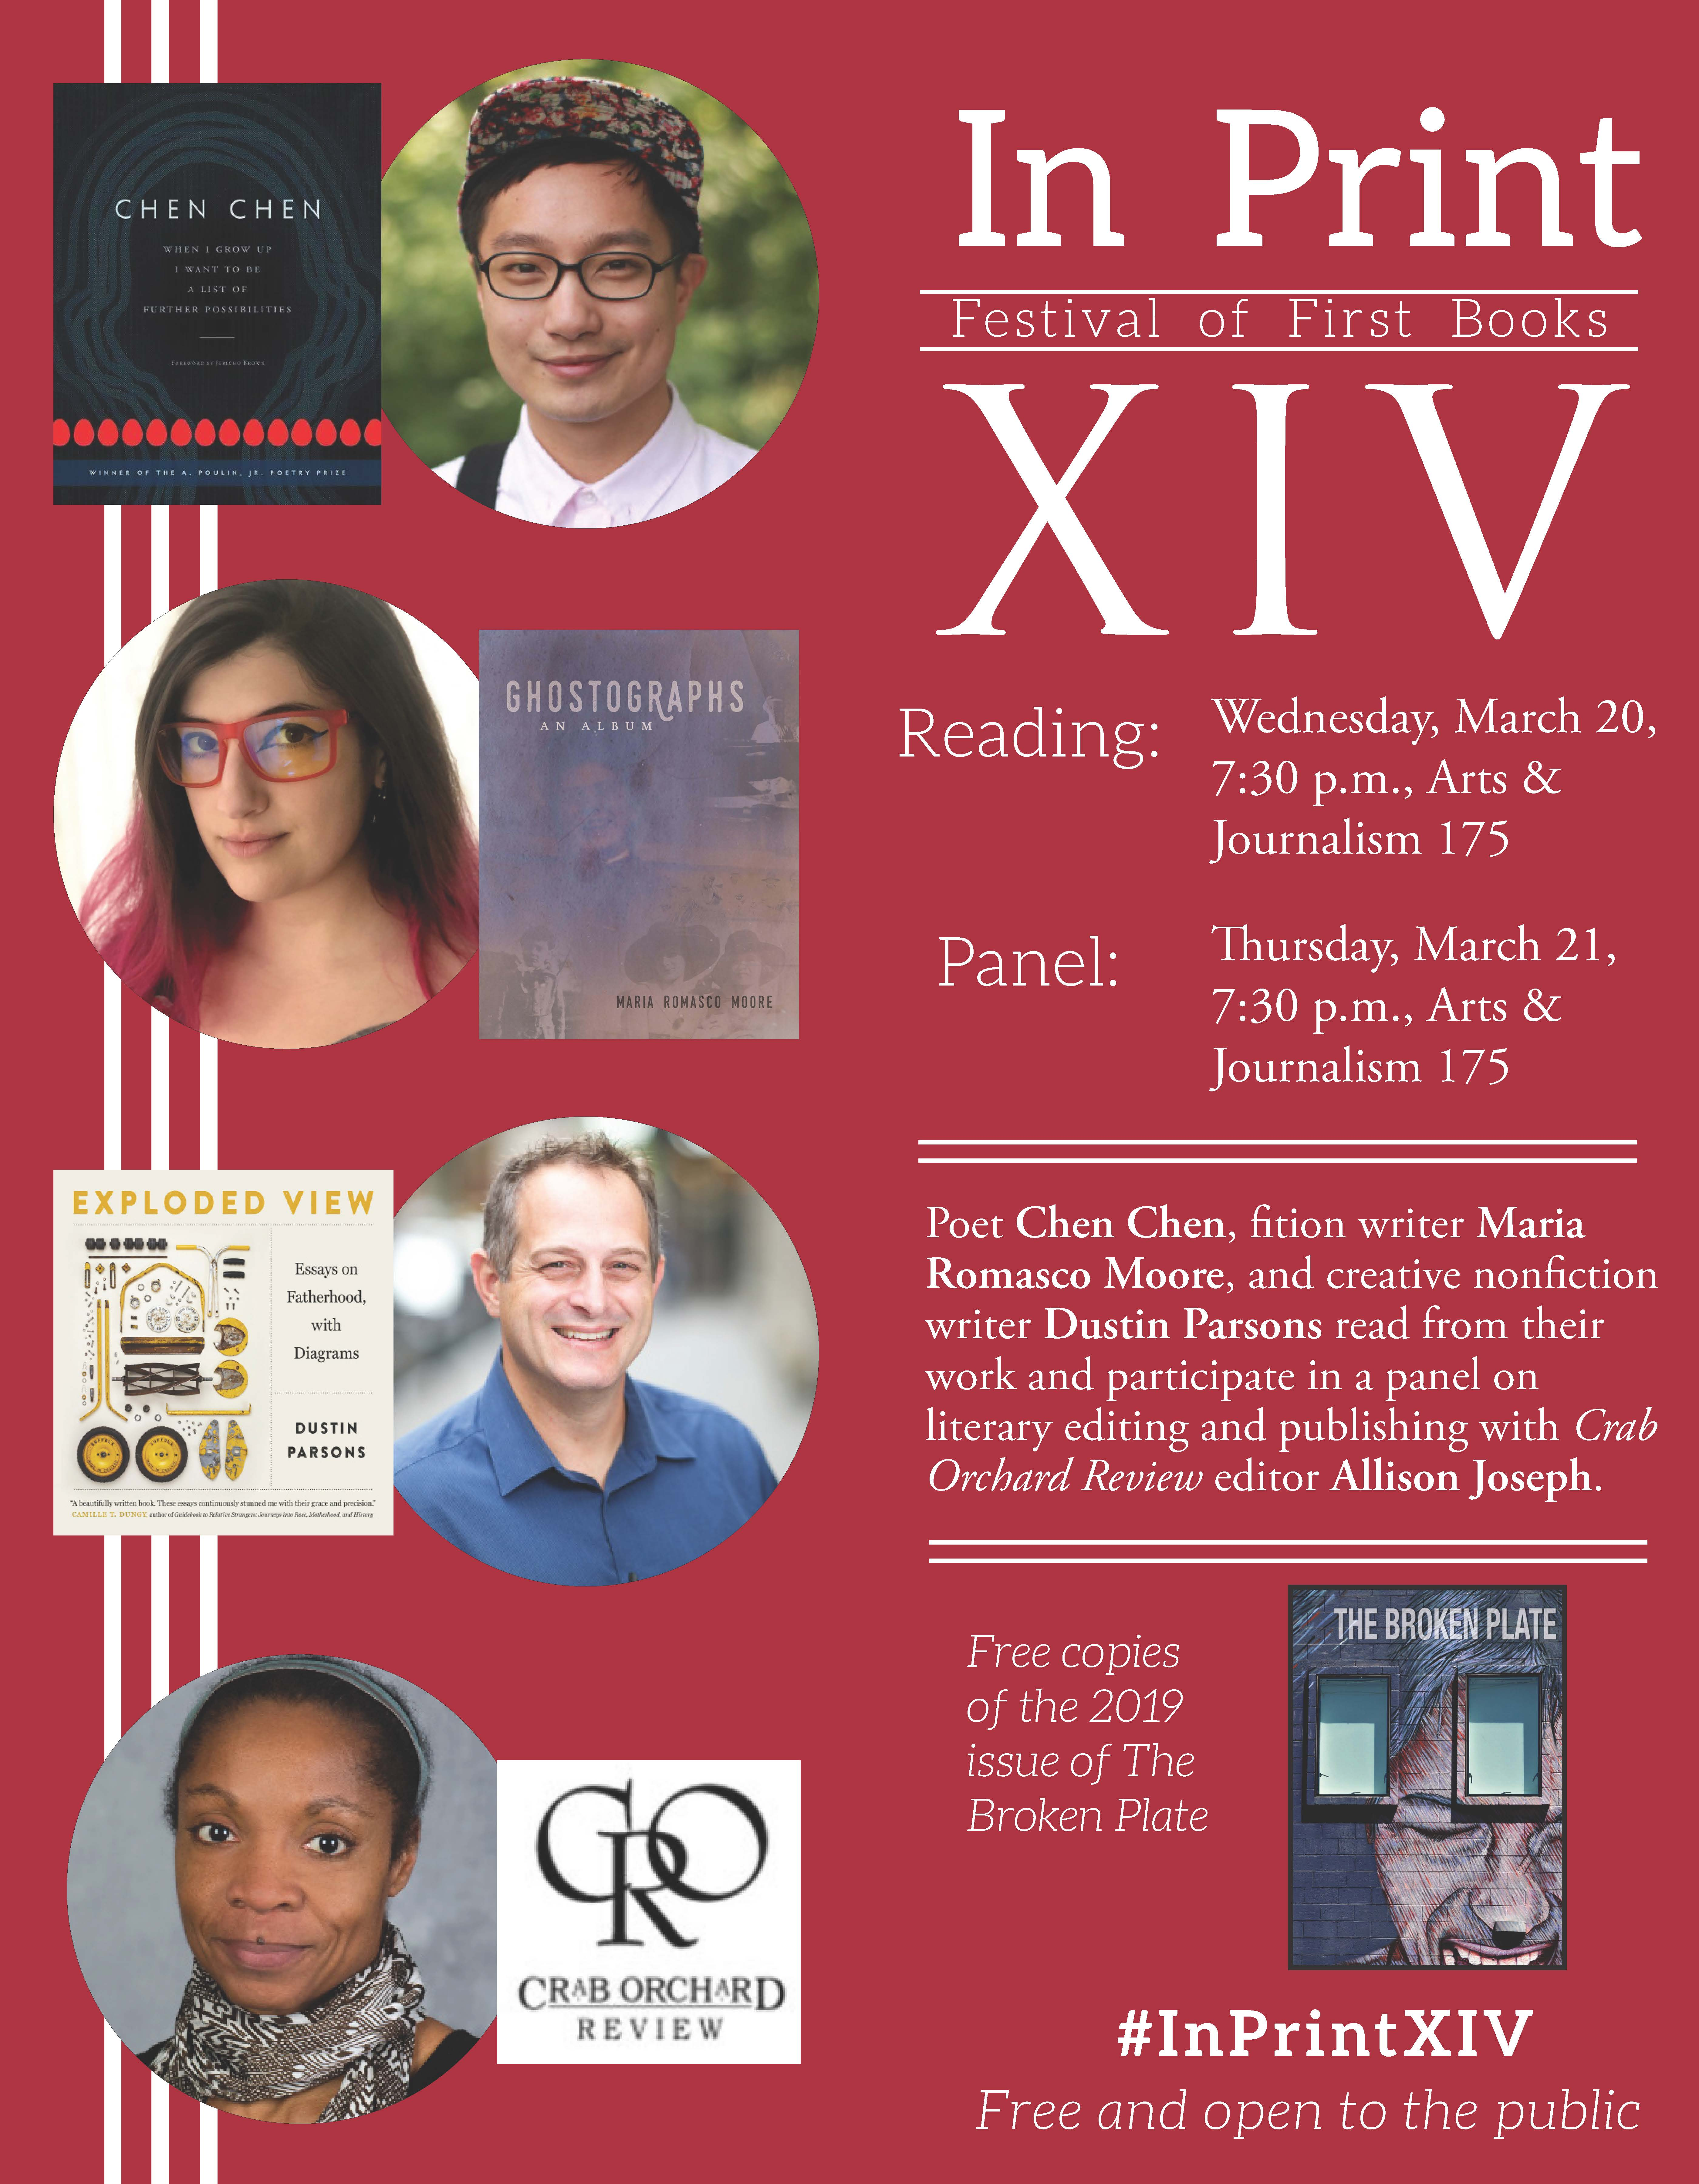 Poster of 2019 In Print Festival of First Books XIV featuring Poet Chen Chen, fiction writer Maria Romasco Moore, creative nonfiction writer Dustin Parsons and editor Allison Joseph